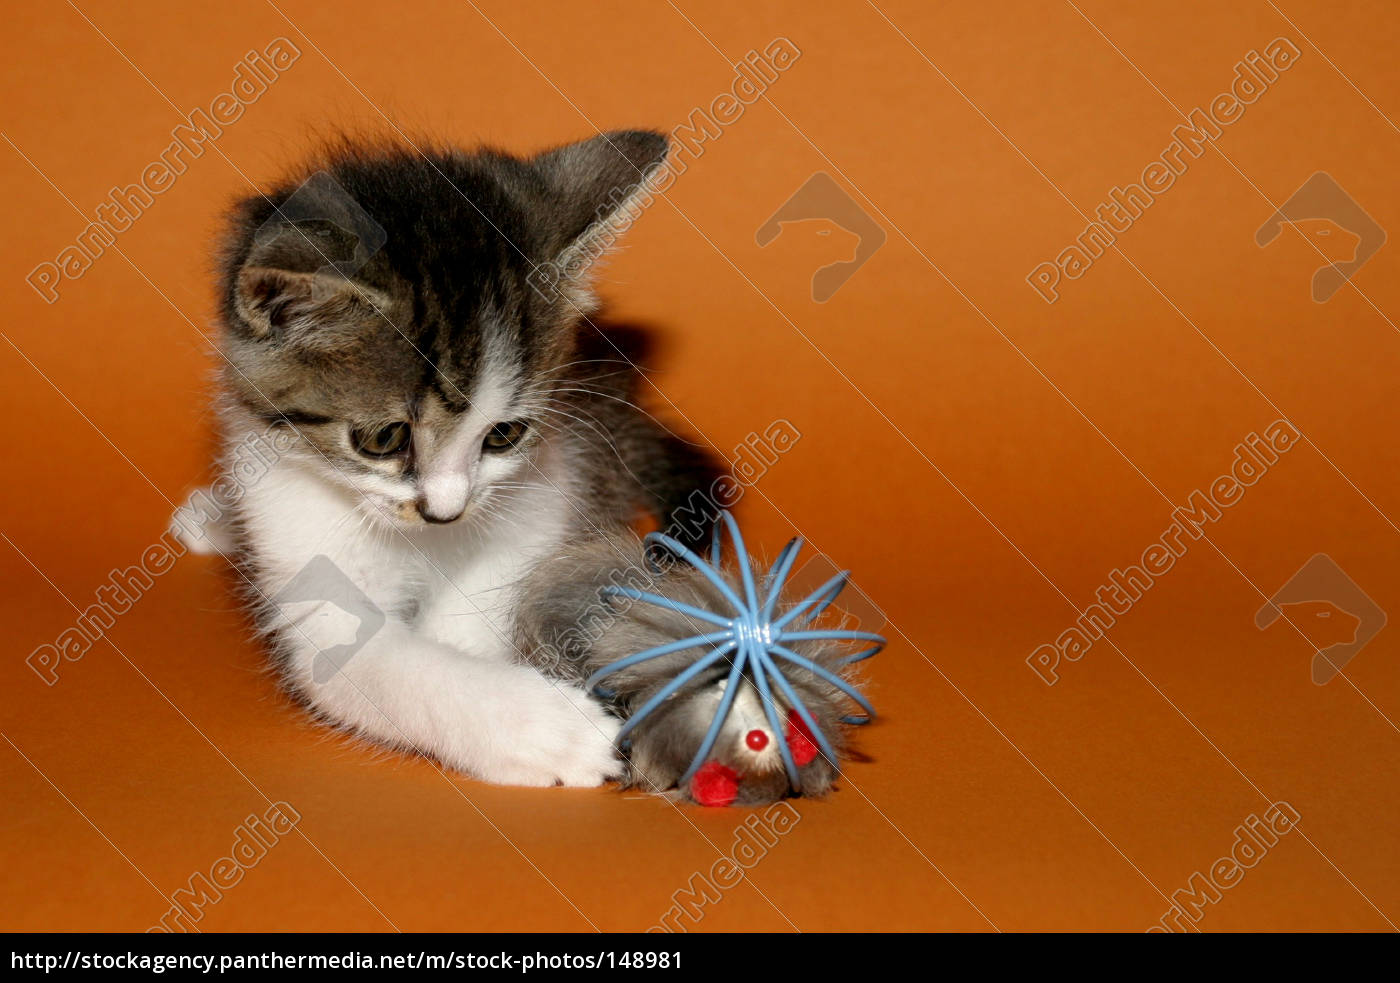 cat, and, mouse - 148981